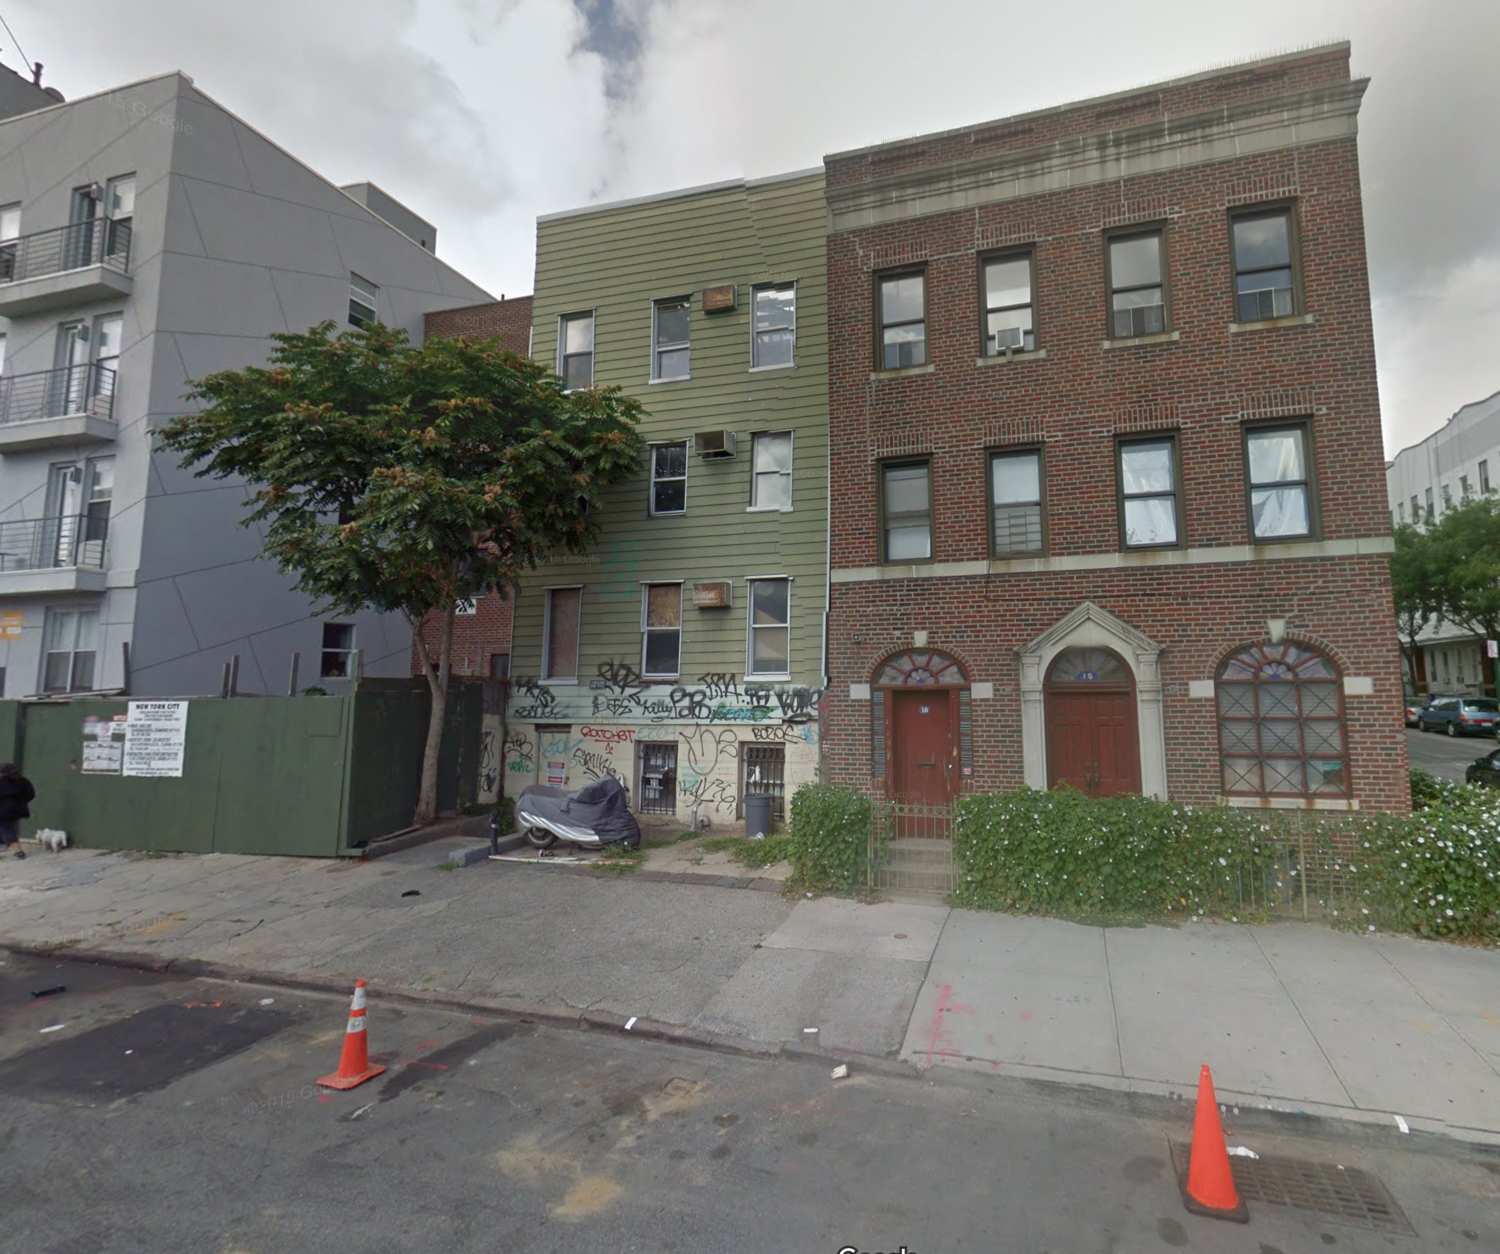 20 Havemeyer Street, via Google Maps